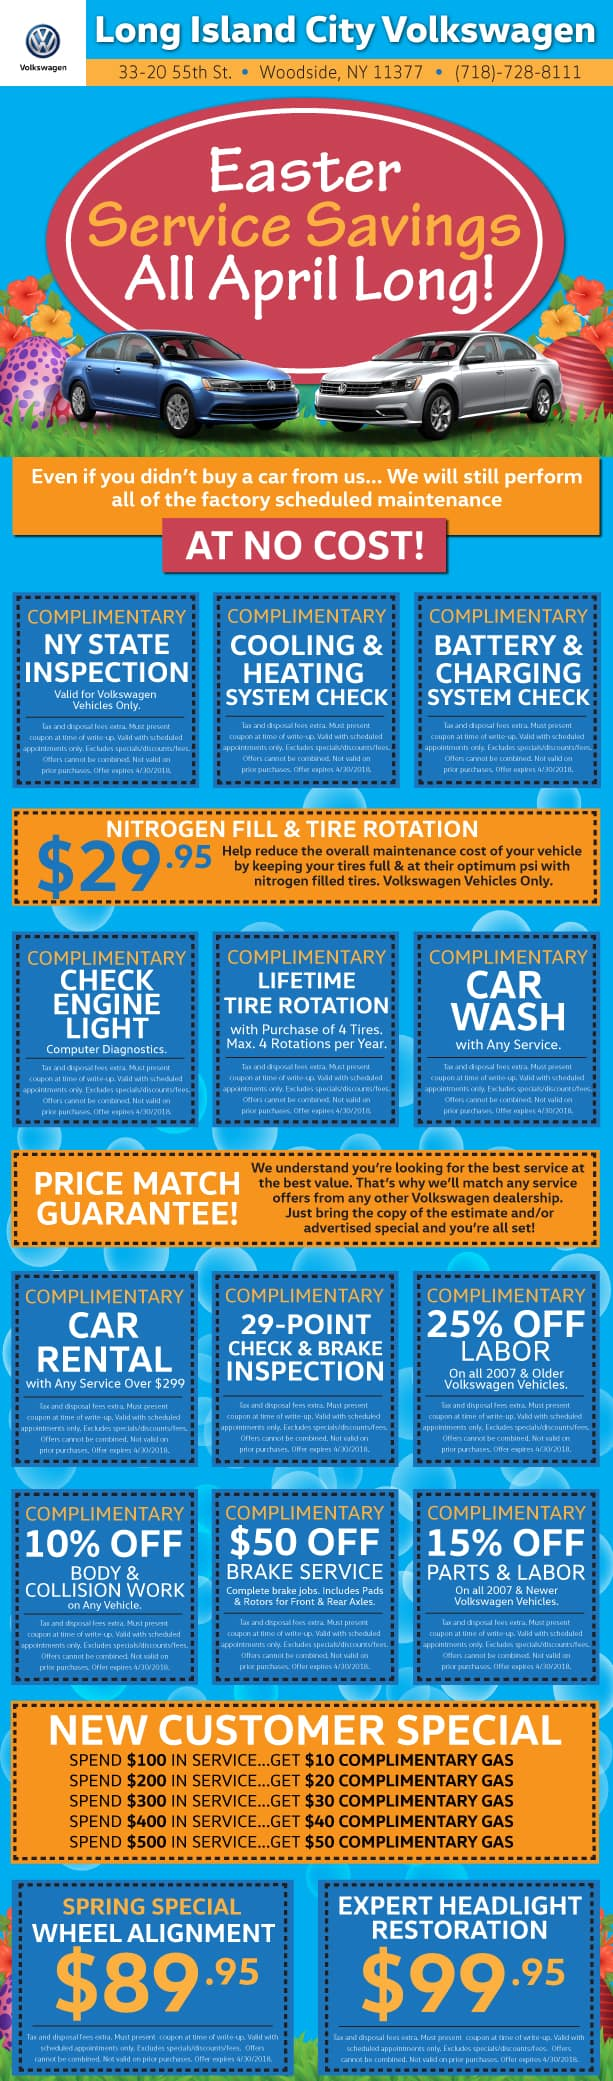 htm service top coupons detail liverpool specials center near tips detailcenter kia performance syracuse area